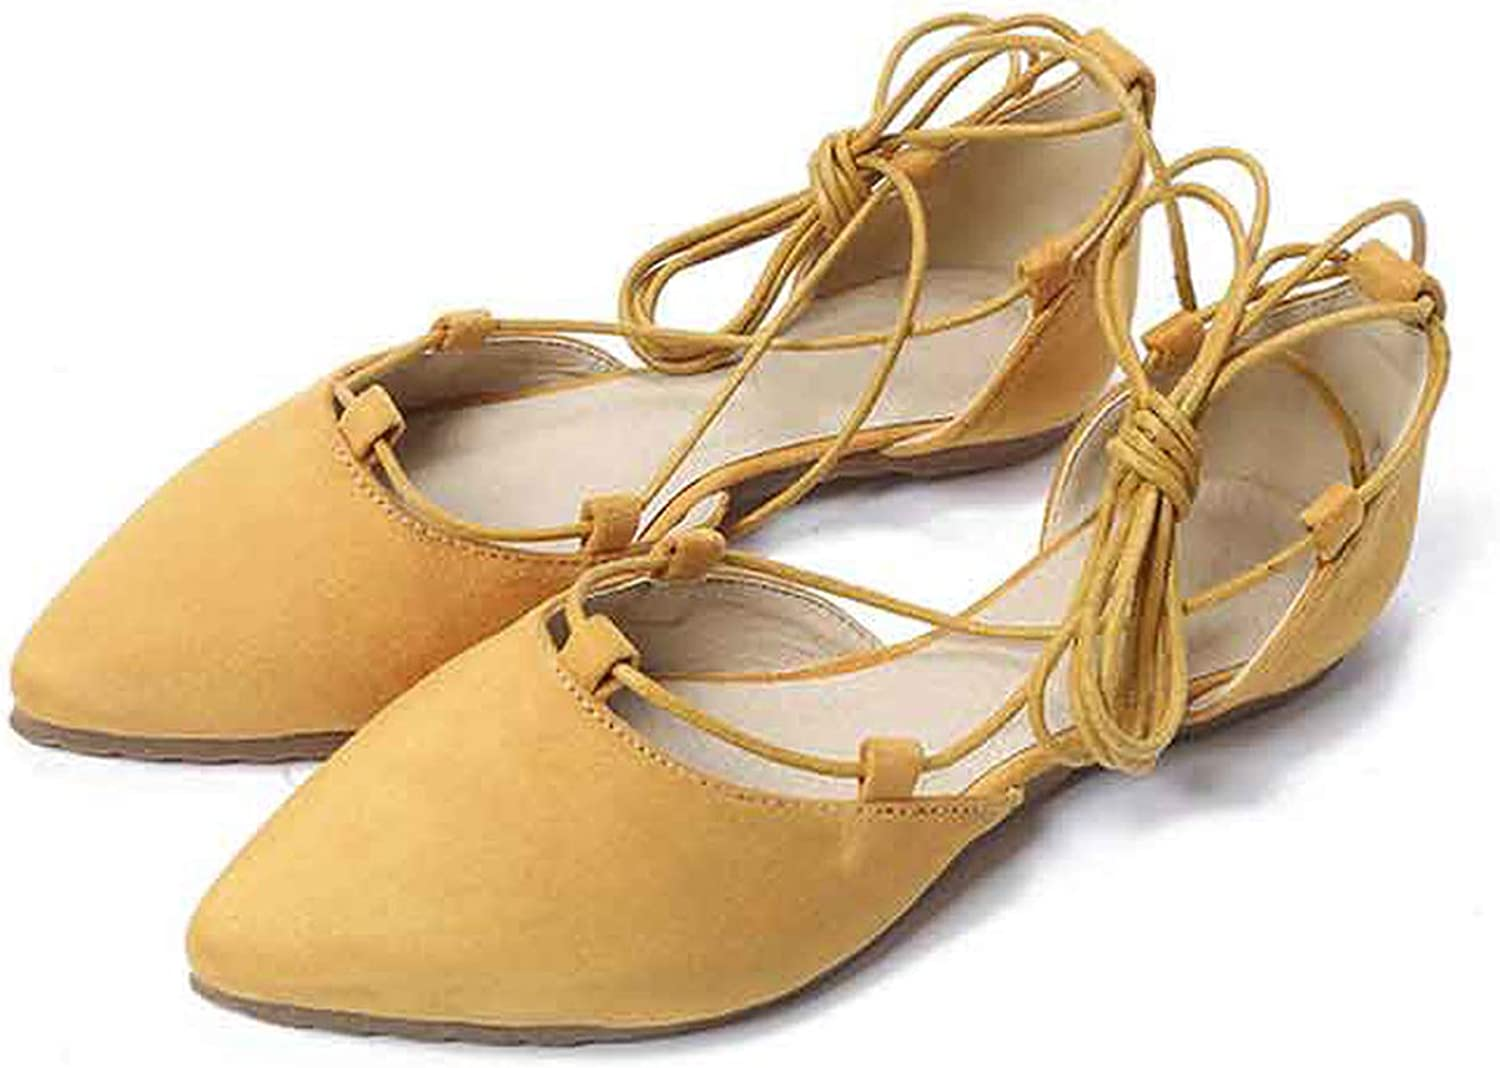 Oasrs Summer Sandals Women Pointed Cross Raps Single shoes Comfortable Flat with Shallow Mouth Women's shoes,Yellow,5